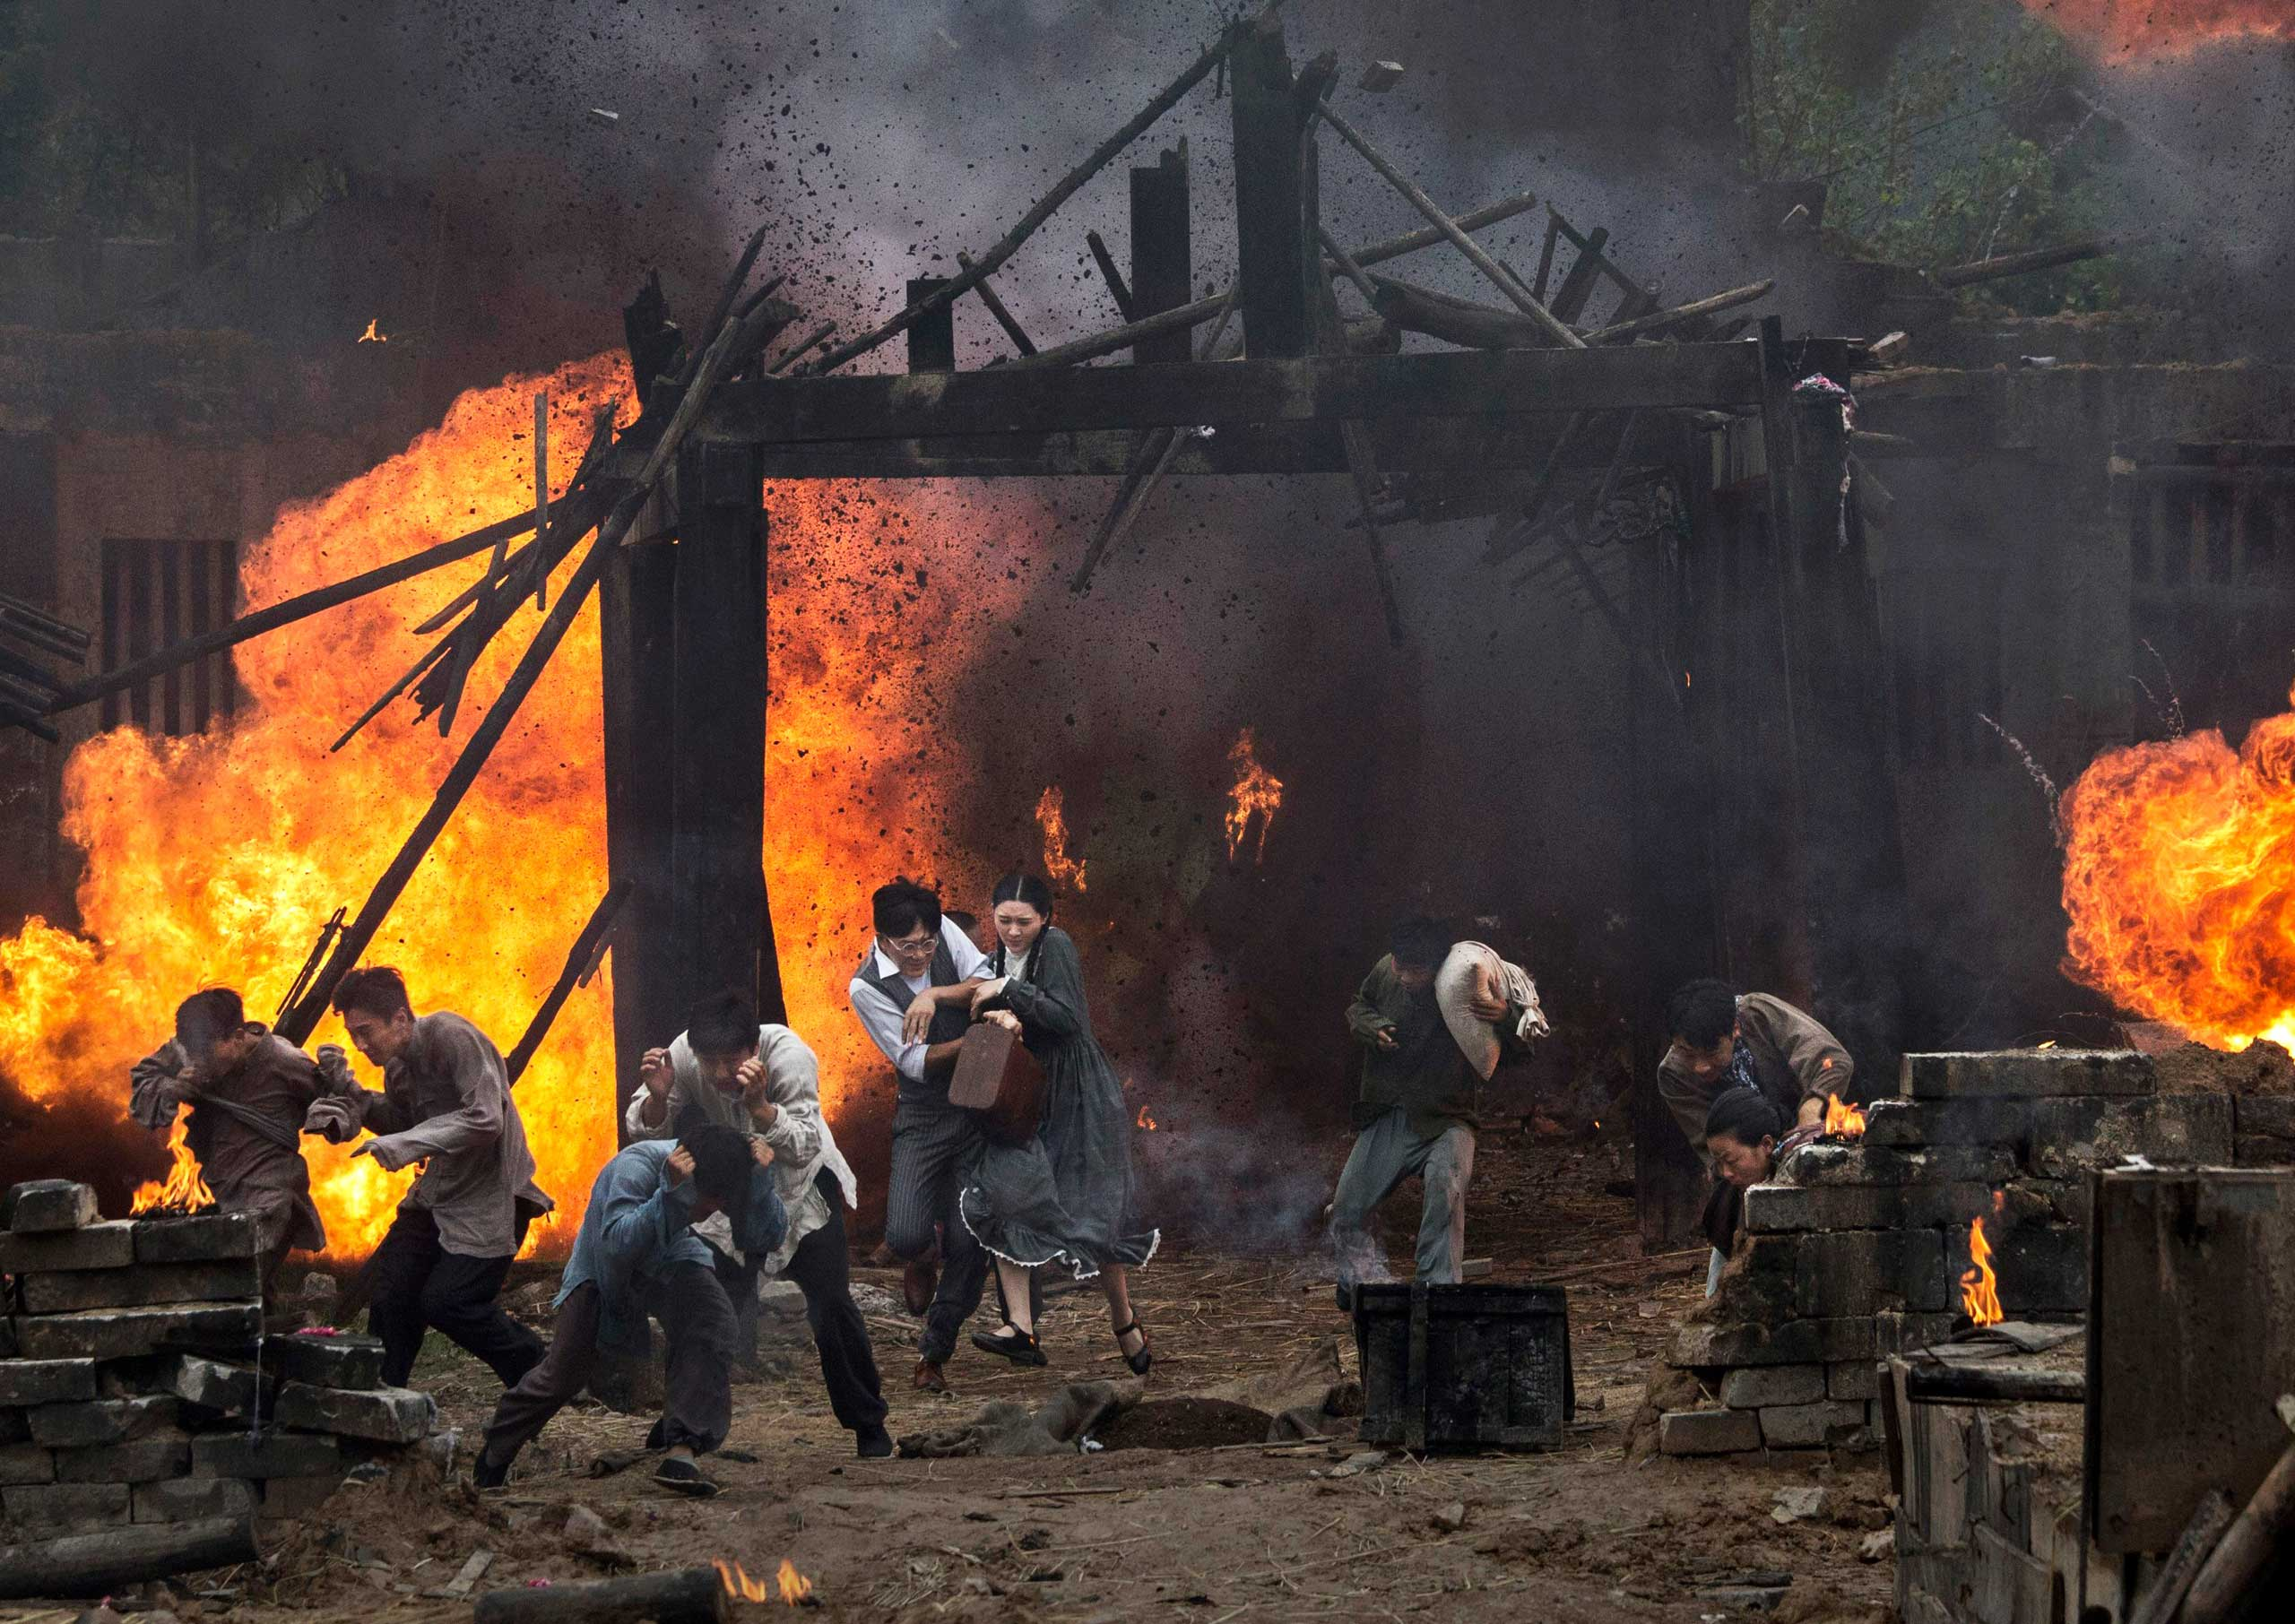 Actors playing Chinese villagers run in a battle scene during filming of the series The Nu River War, in Hengdian, on Aug. 12, 2015.